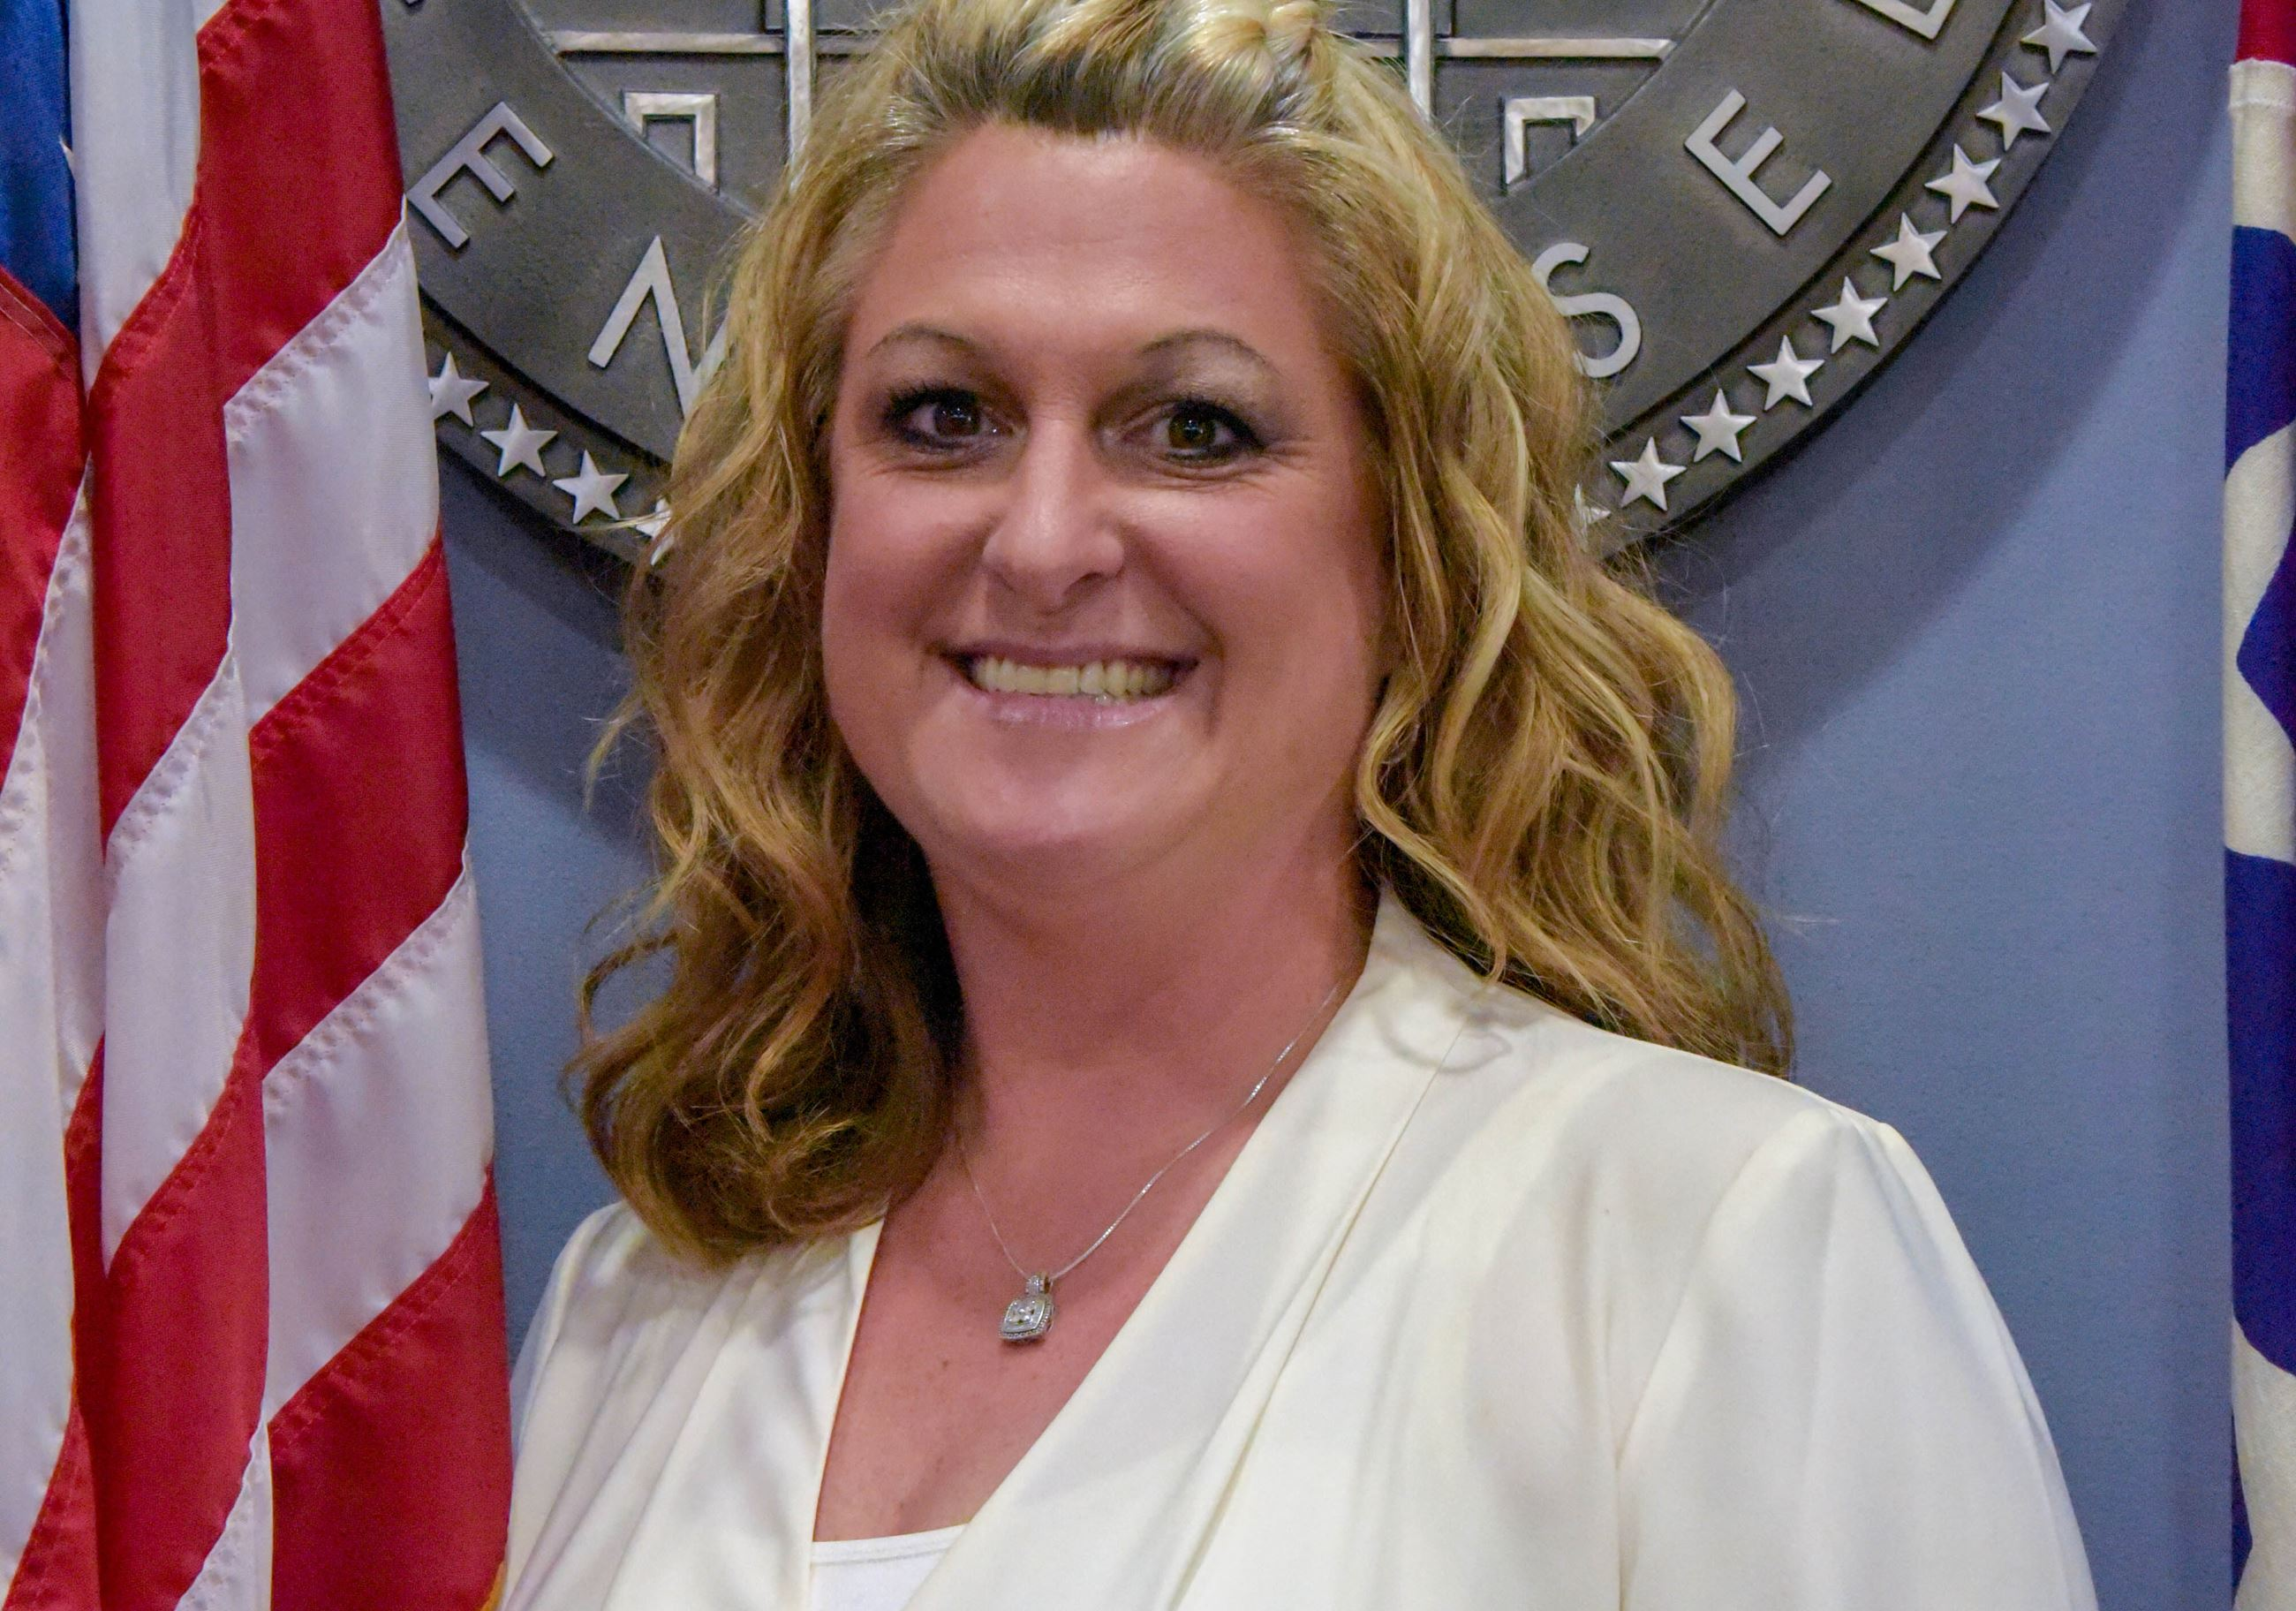 Alderman Amy Wurth was named the new vice mayor by the Board of Mayor and Aldermen